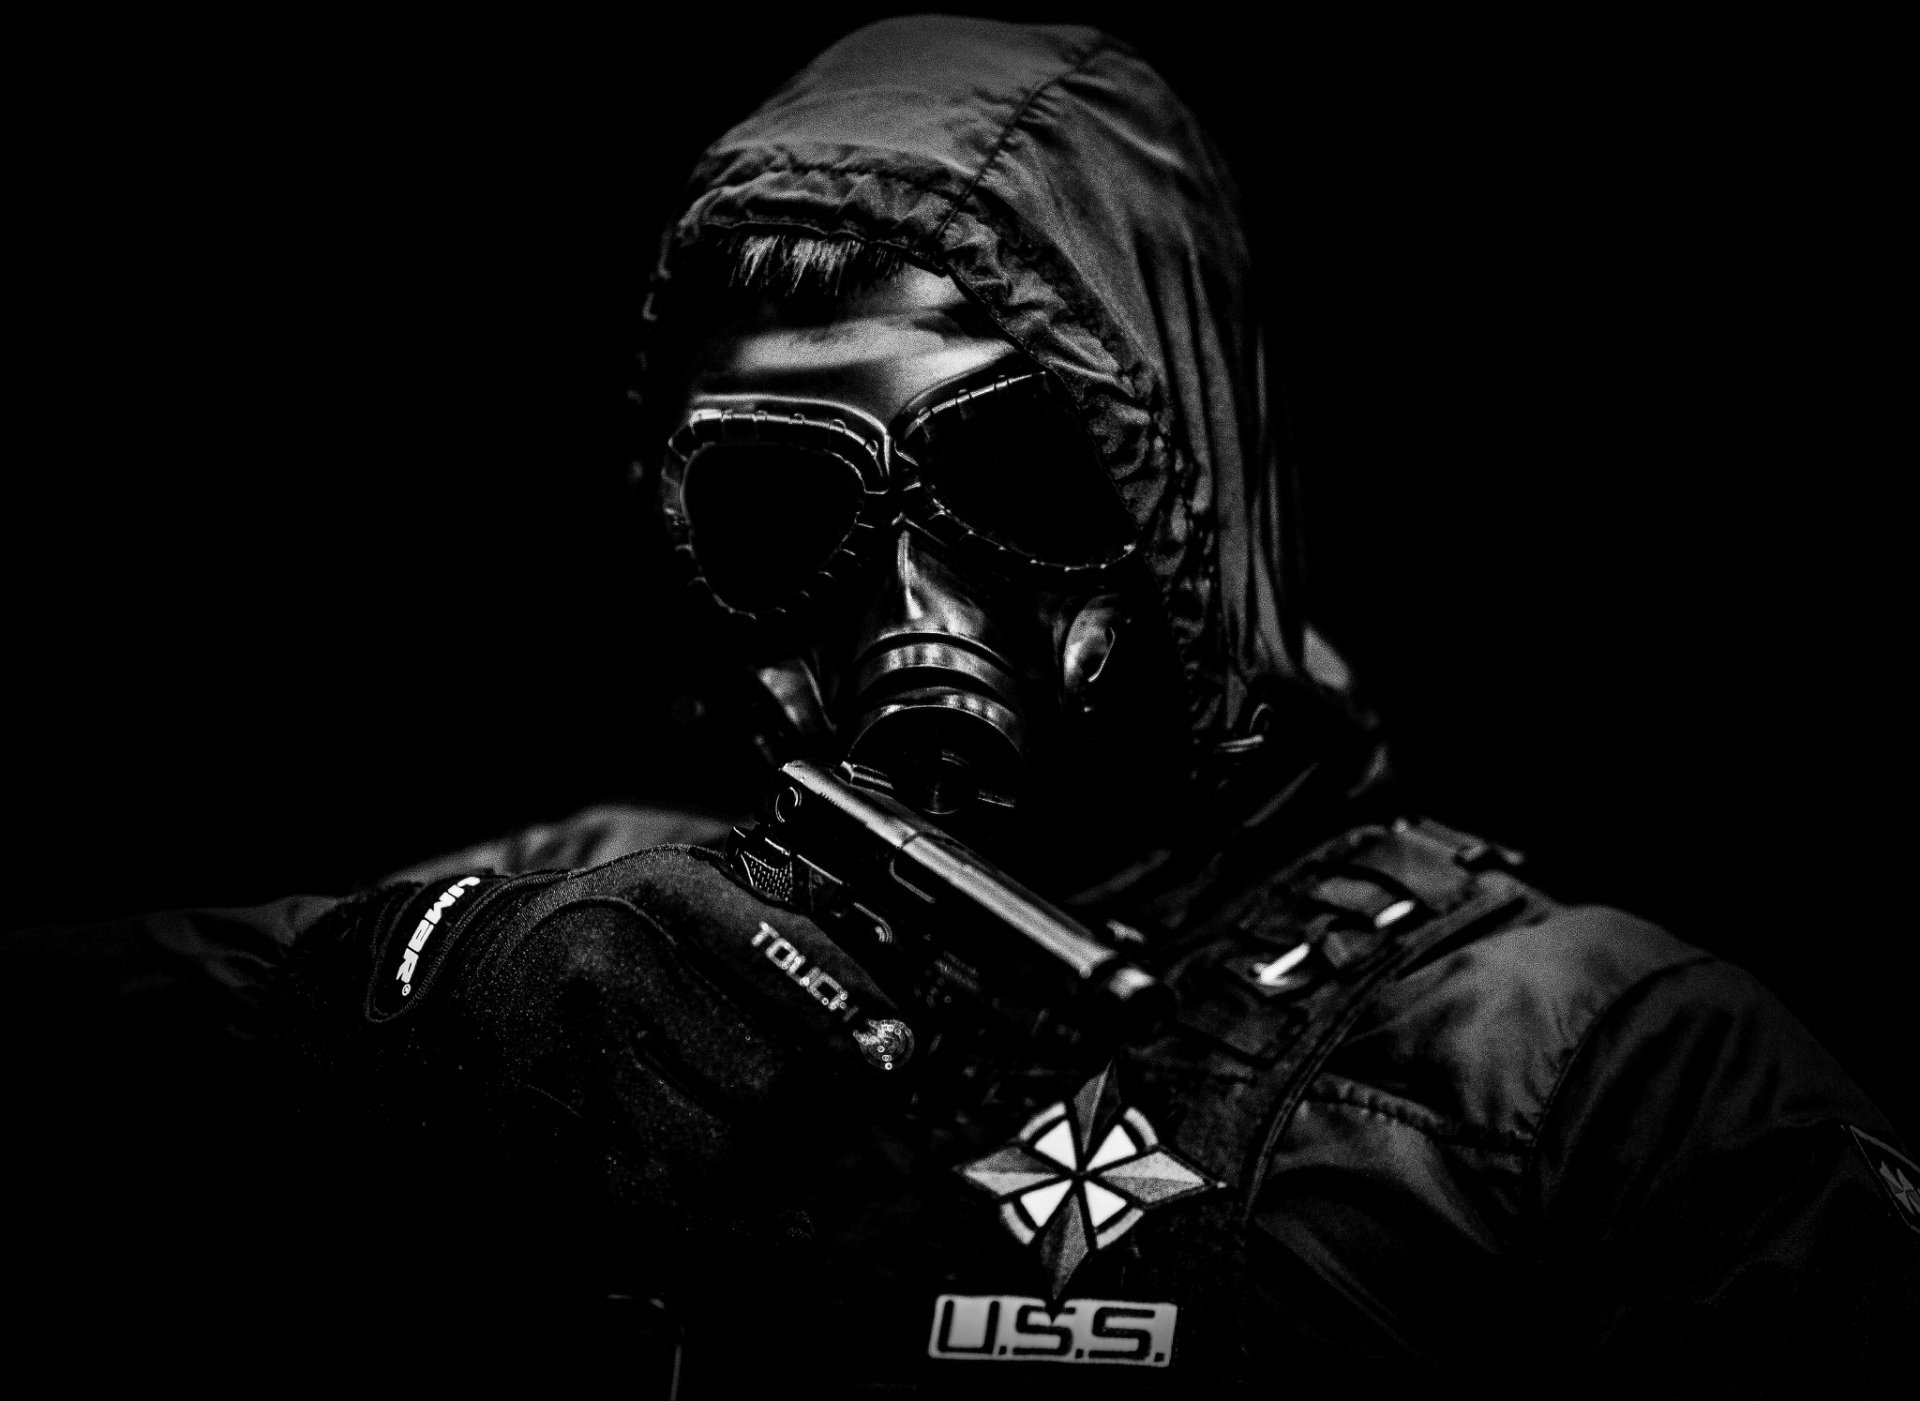 men hood mask jacket weapon gun